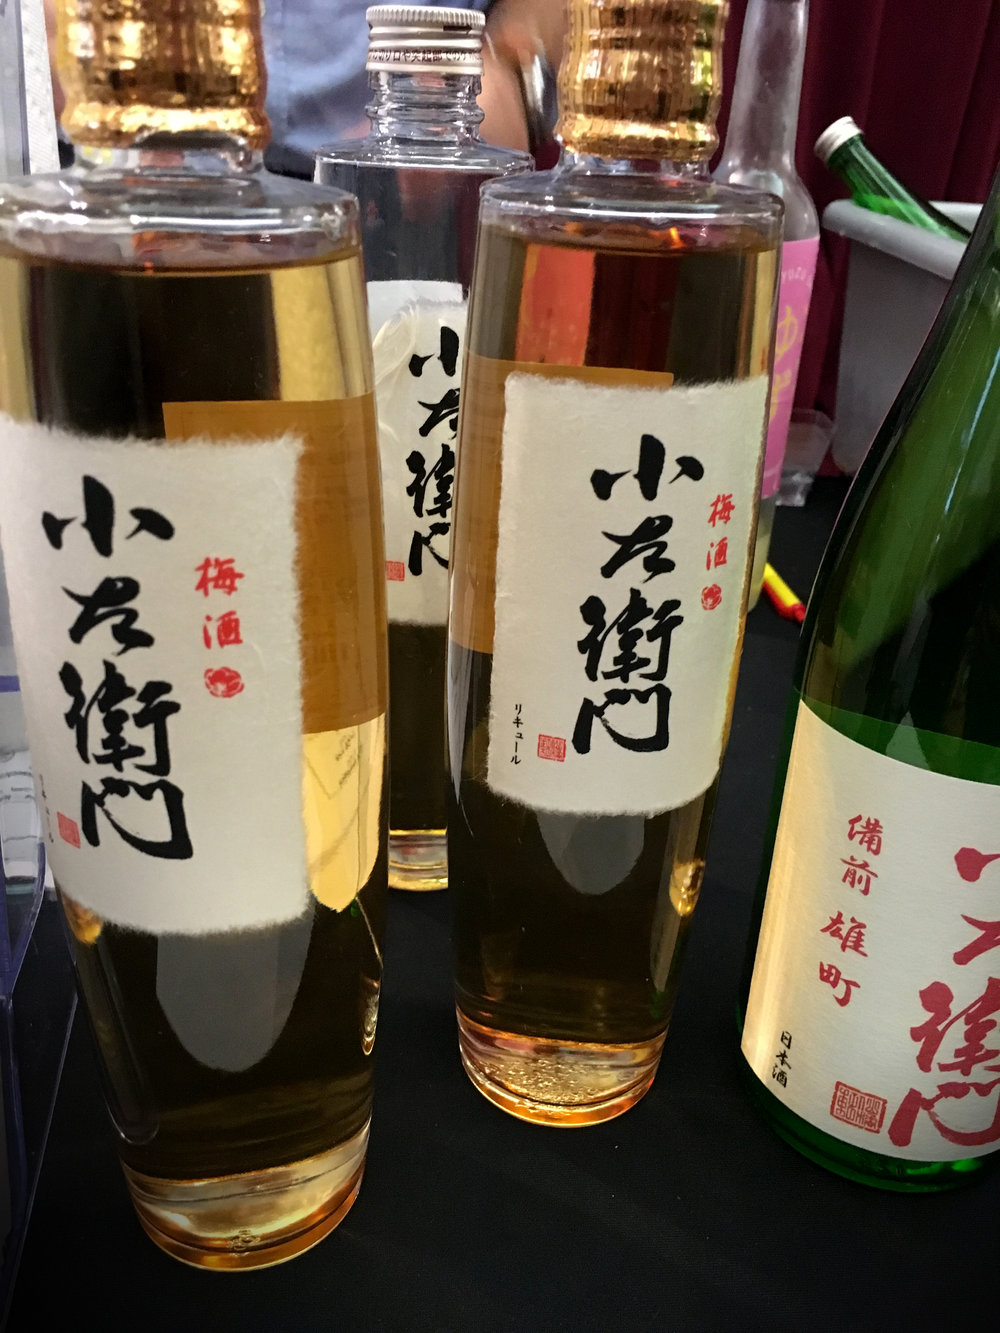 Ozaemon from Toki city, Gifu great balance of umami and acidity